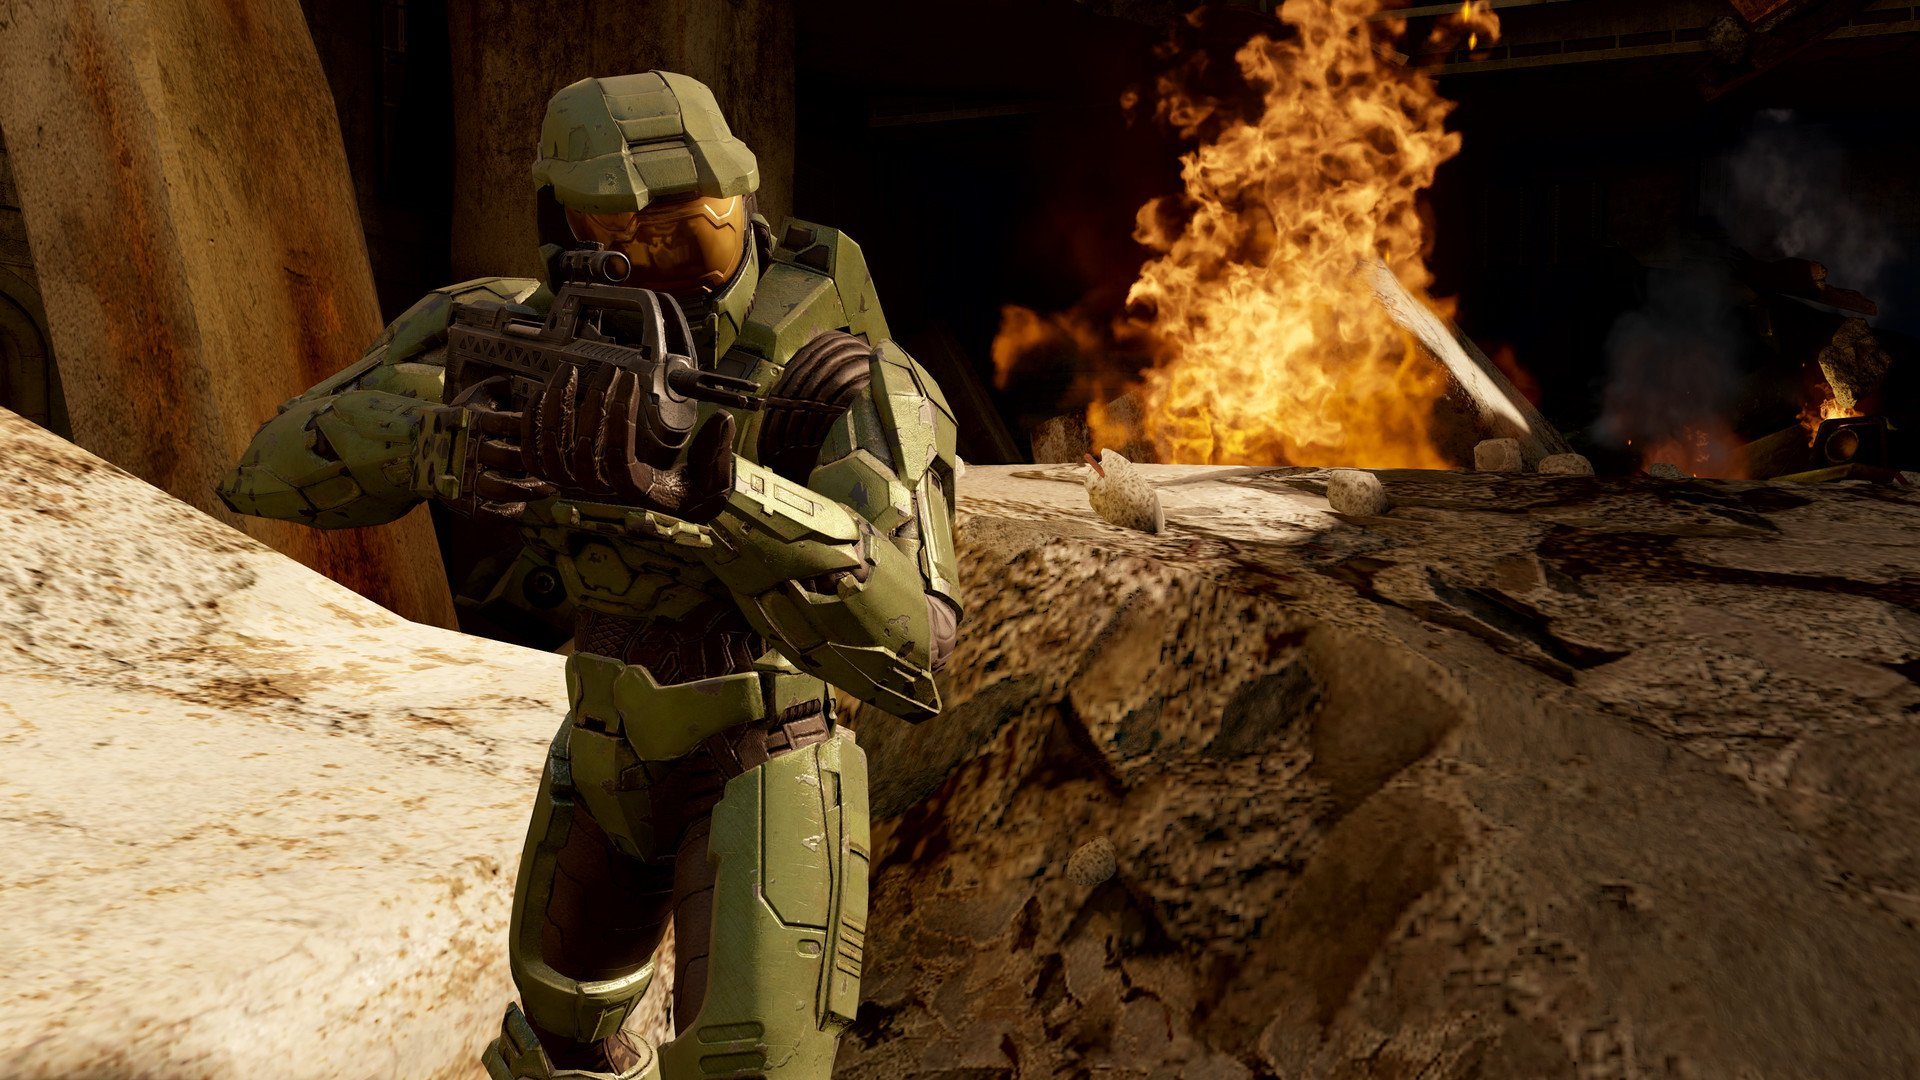 How to download and play Halo 2 Anniversary on PC